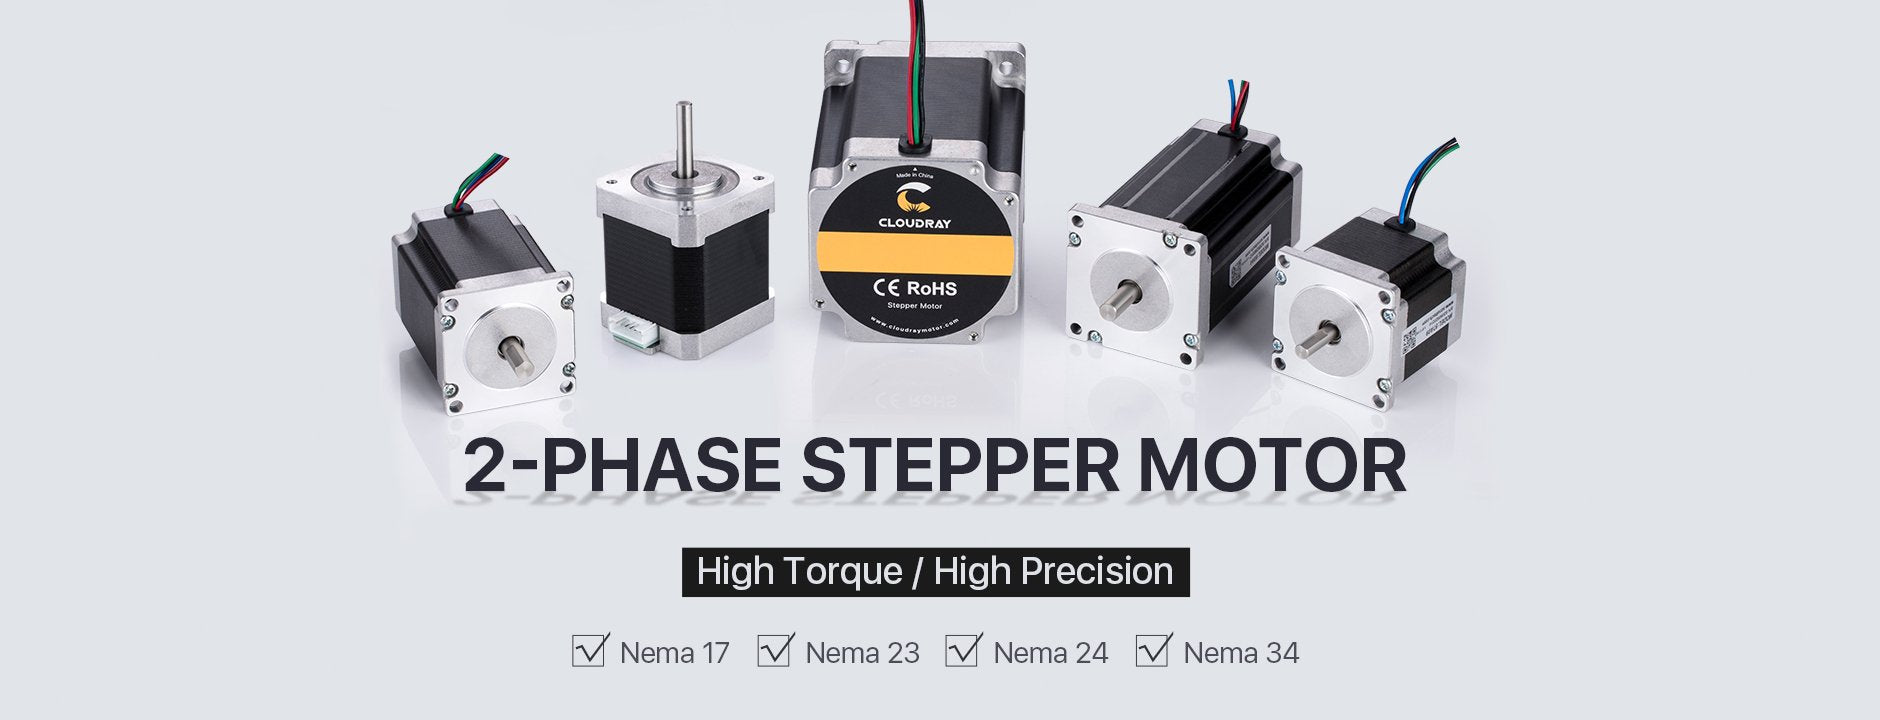 Stepping motor for medical devices